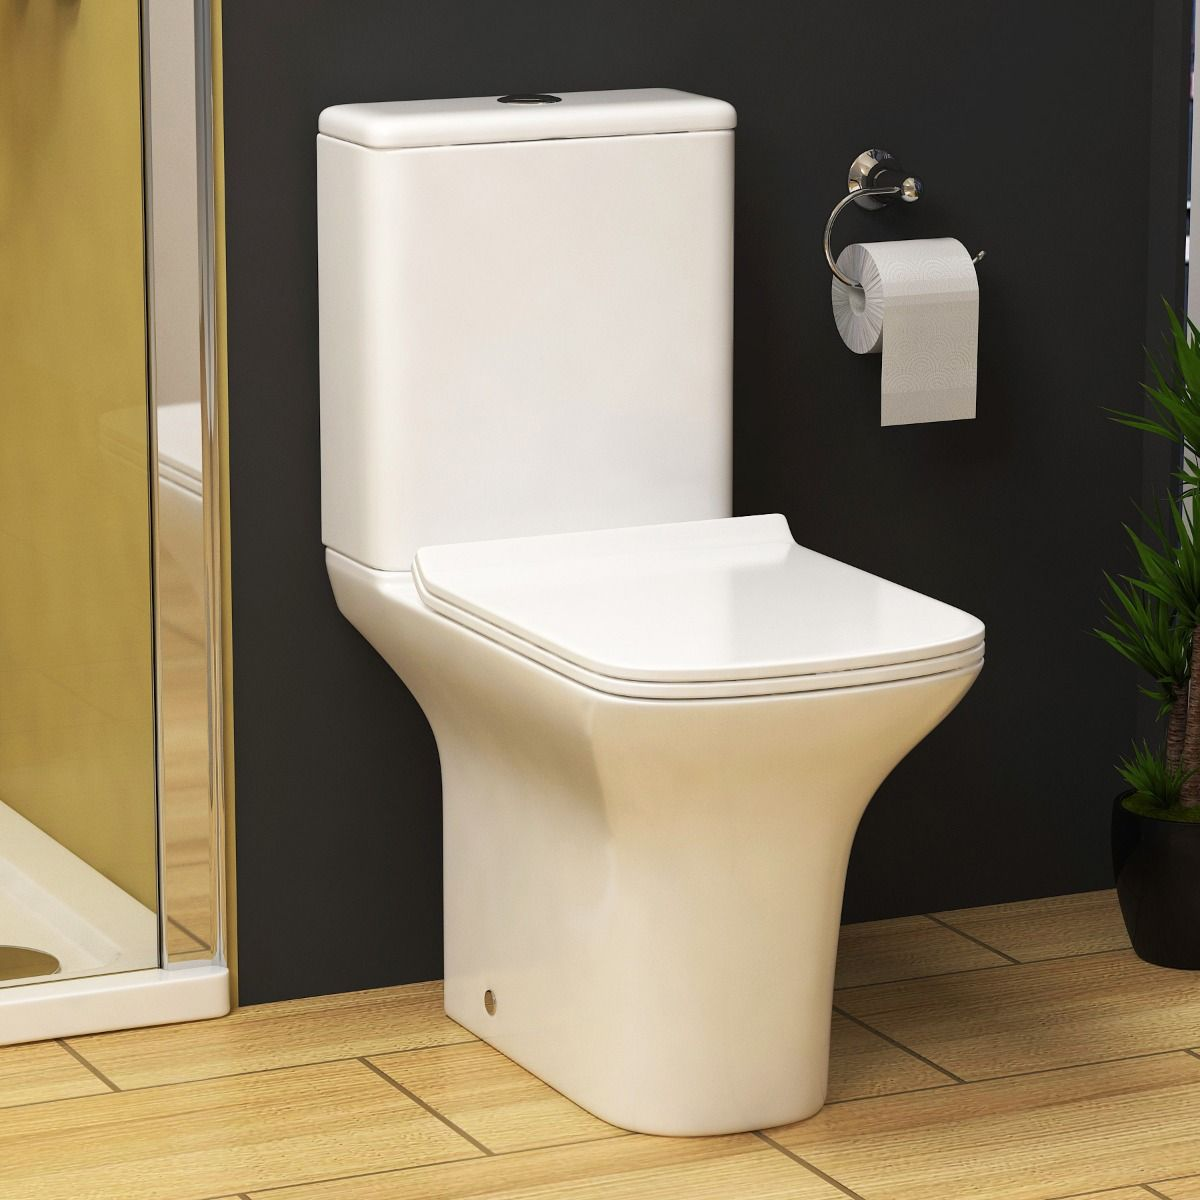 Type of Toilets for Your Bathroom - Buying Guide!